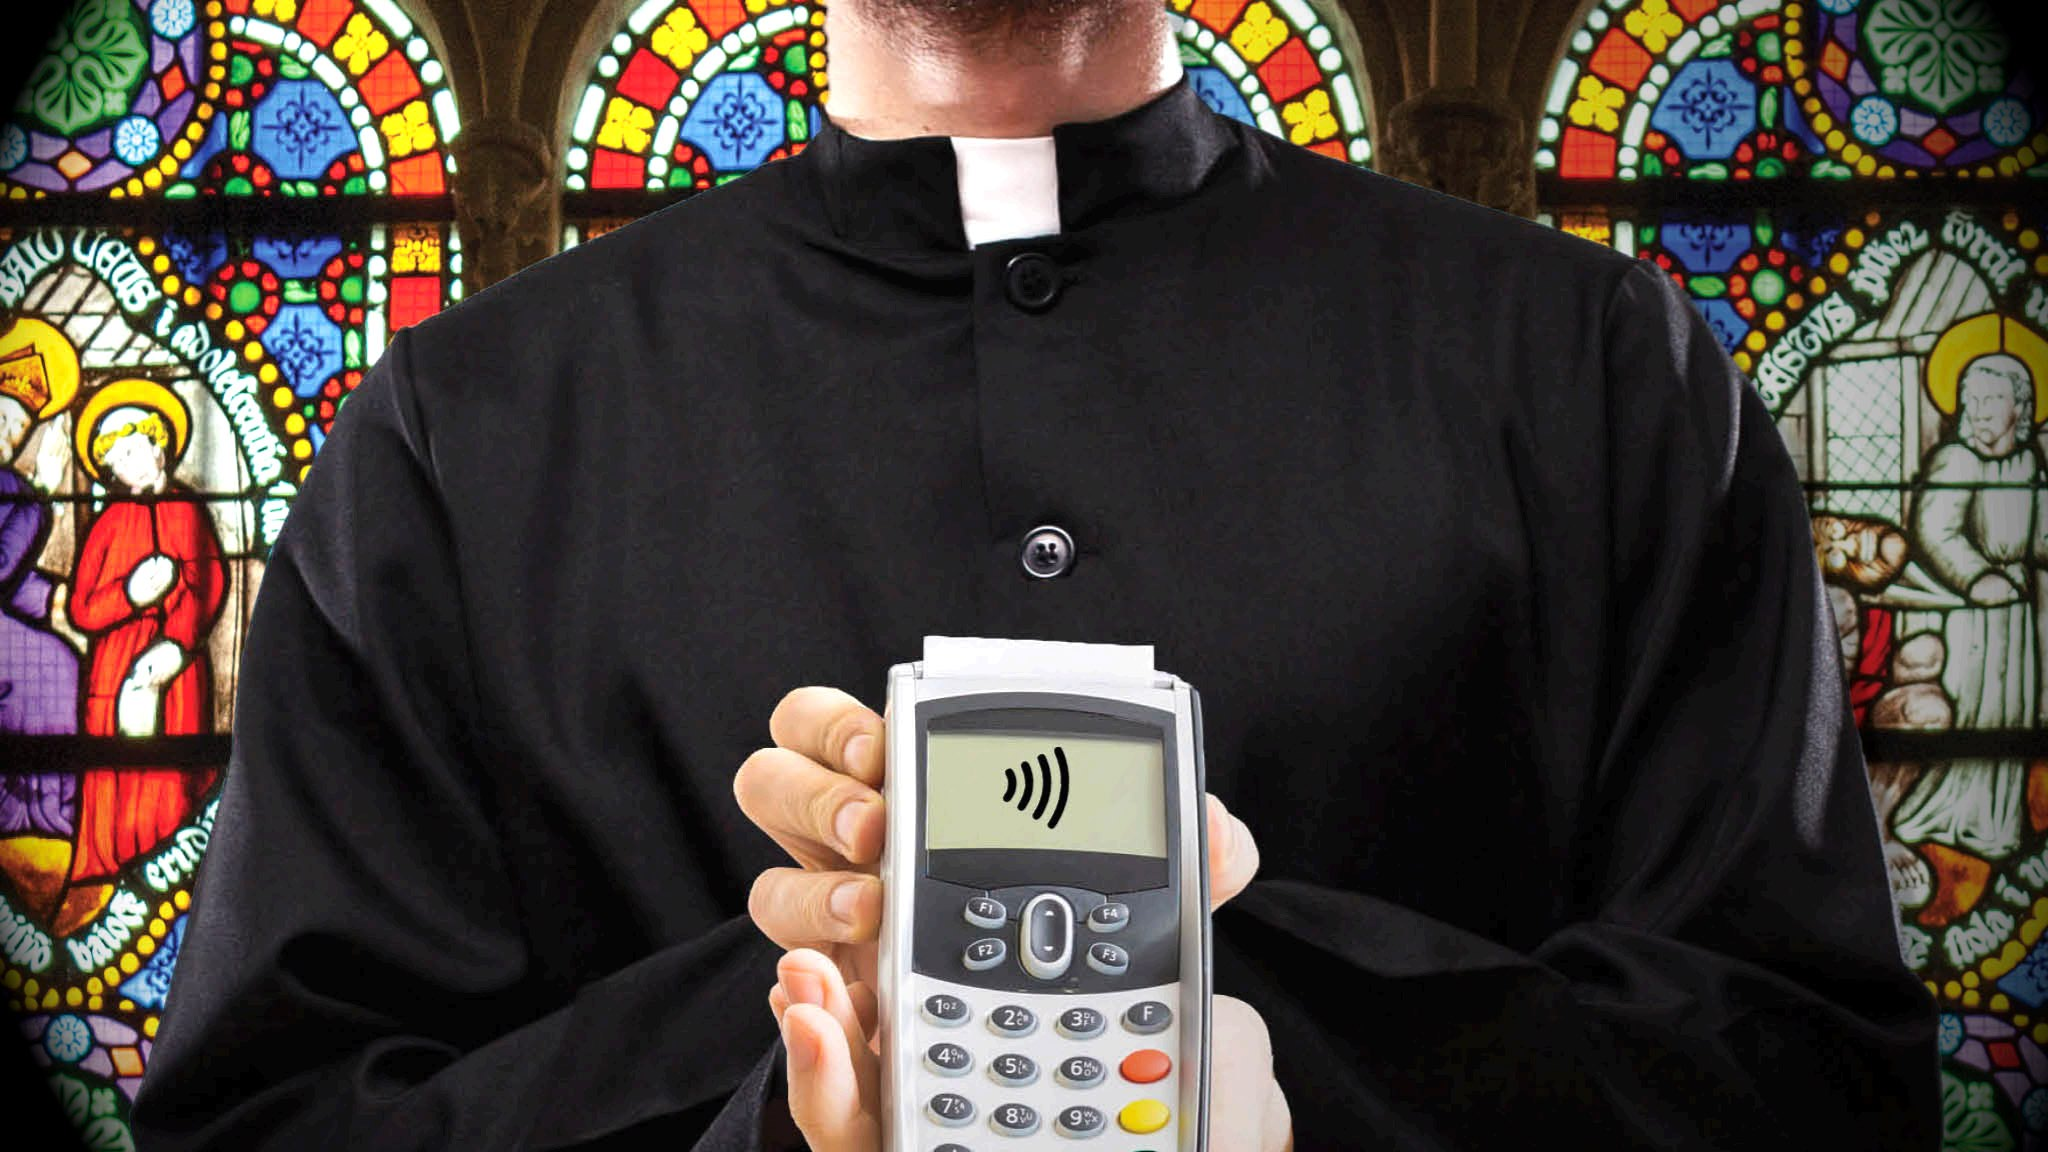 priest-holding-tap-to-give.jpeg